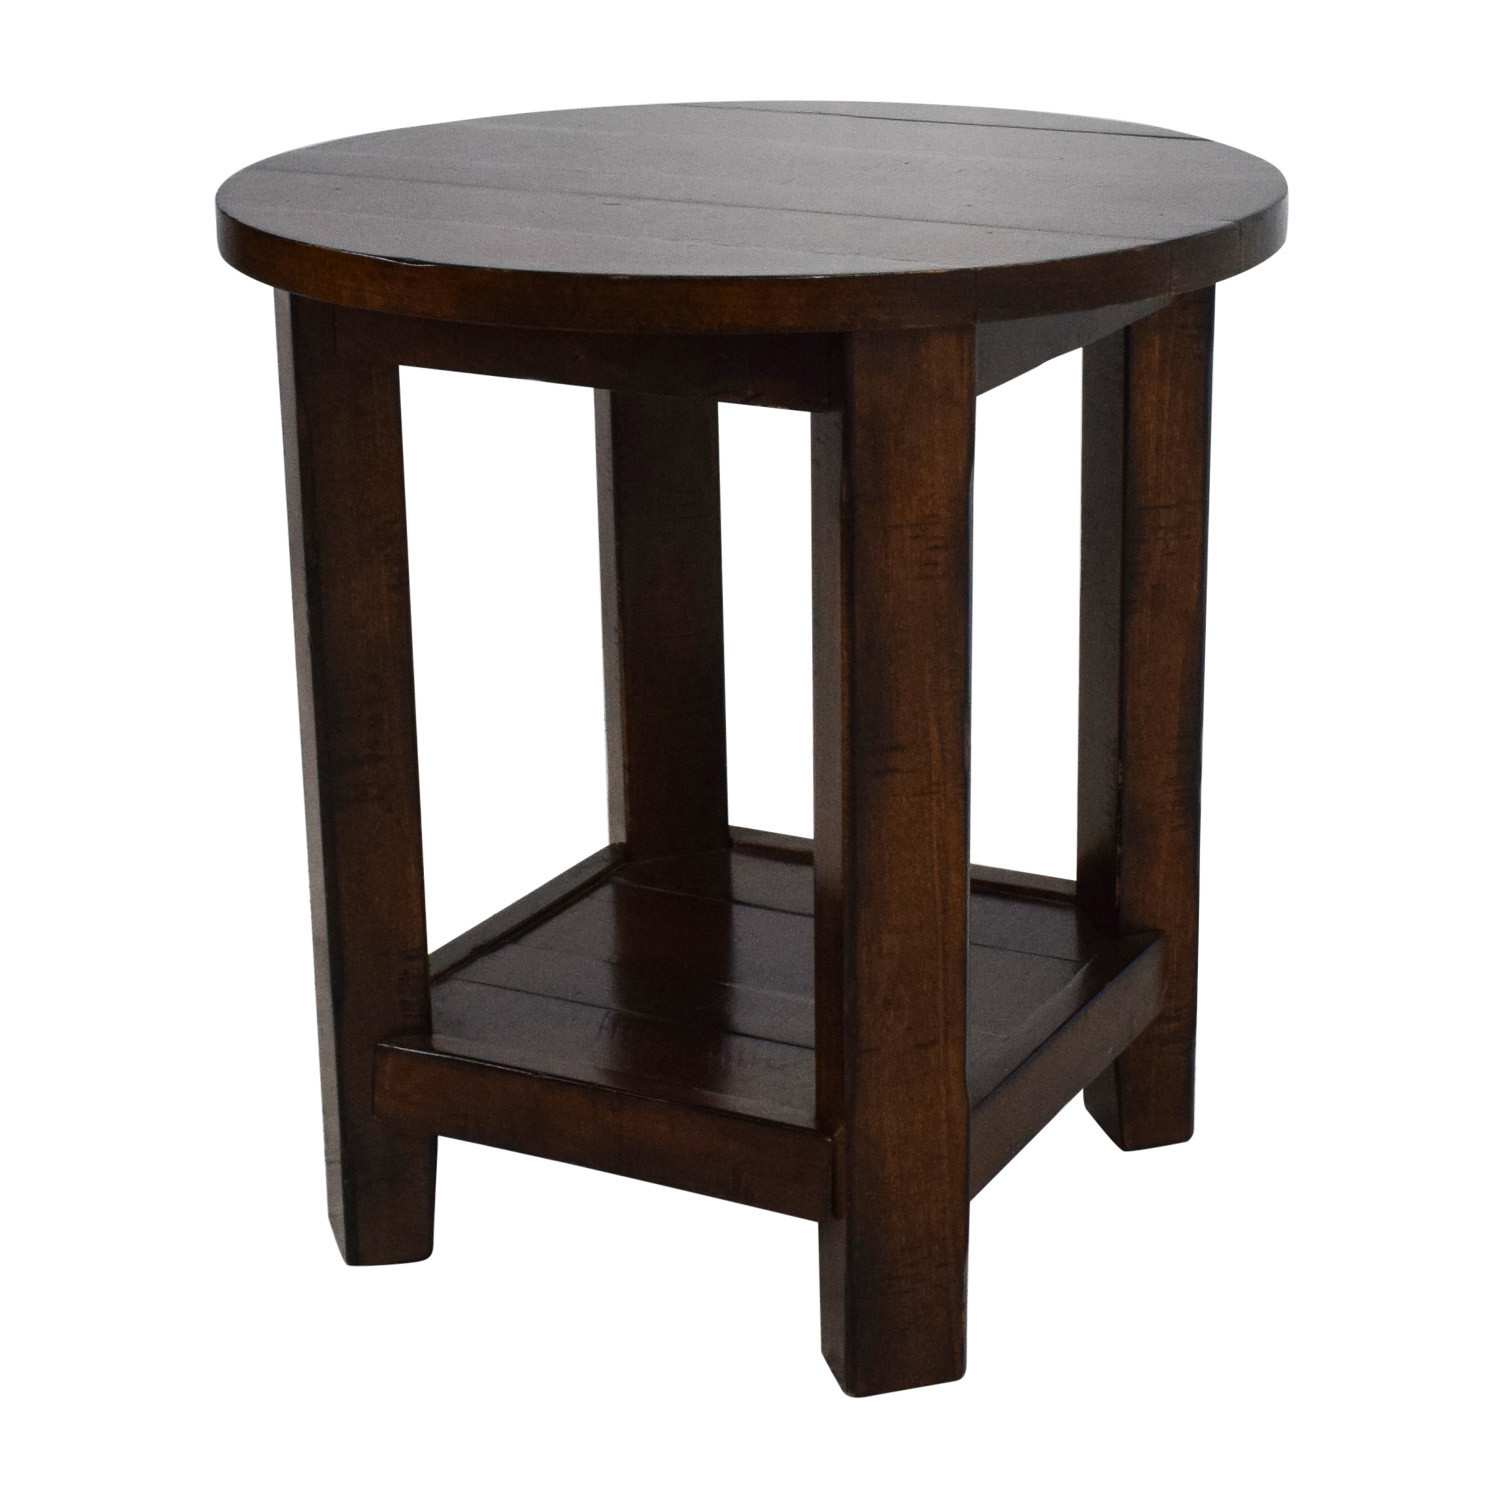 cool pottery barn accent tables for end decor beautiful off wooden side table dinner home accents modern living room coffee white and black target furniture moroccan tray half